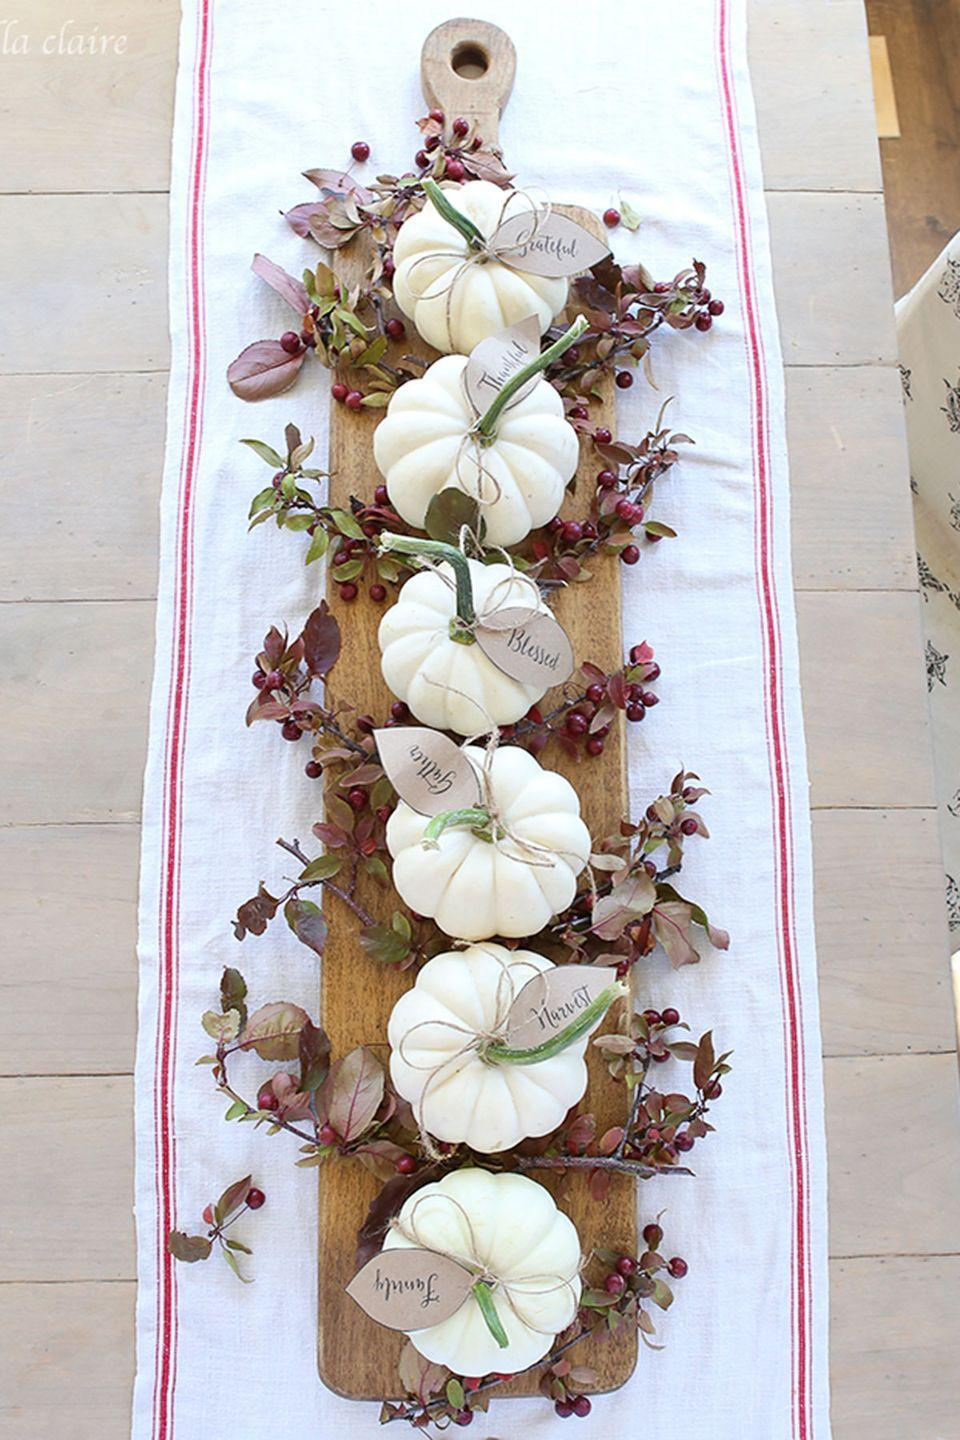 """<p>Tie leaf-shaped tags around your pumpkins and add sprigs of fall picks to create this simply gorgeous centerpiece.</p><p><strong>Get the tutorial at <a href=""""http://www.ellaclaireinspired.com/fall-2015-home-tour/"""" rel=""""nofollow noopener"""" target=""""_blank"""" data-ylk=""""slk:Ella Claire"""" class=""""link rapid-noclick-resp"""">Ella Claire</a>.</strong></p><p><strong><a class=""""link rapid-noclick-resp"""" href=""""https://go.redirectingat.com?id=74968X1596630&url=https%3A%2F%2Fwww.worldmarket.com%2Fproduct%2Flarge-raw-edge-wood-paddle-cutting-board.do&sref=https%3A%2F%2Fwww.countryliving.com%2Fentertaining%2Fg2130%2Fthanksgiving-centerpieces%2F"""" rel=""""nofollow noopener"""" target=""""_blank"""" data-ylk=""""slk:SHOP PADDLE CUTTING BOARD"""">SHOP PADDLE CUTTING BOARD</a></strong></p>"""